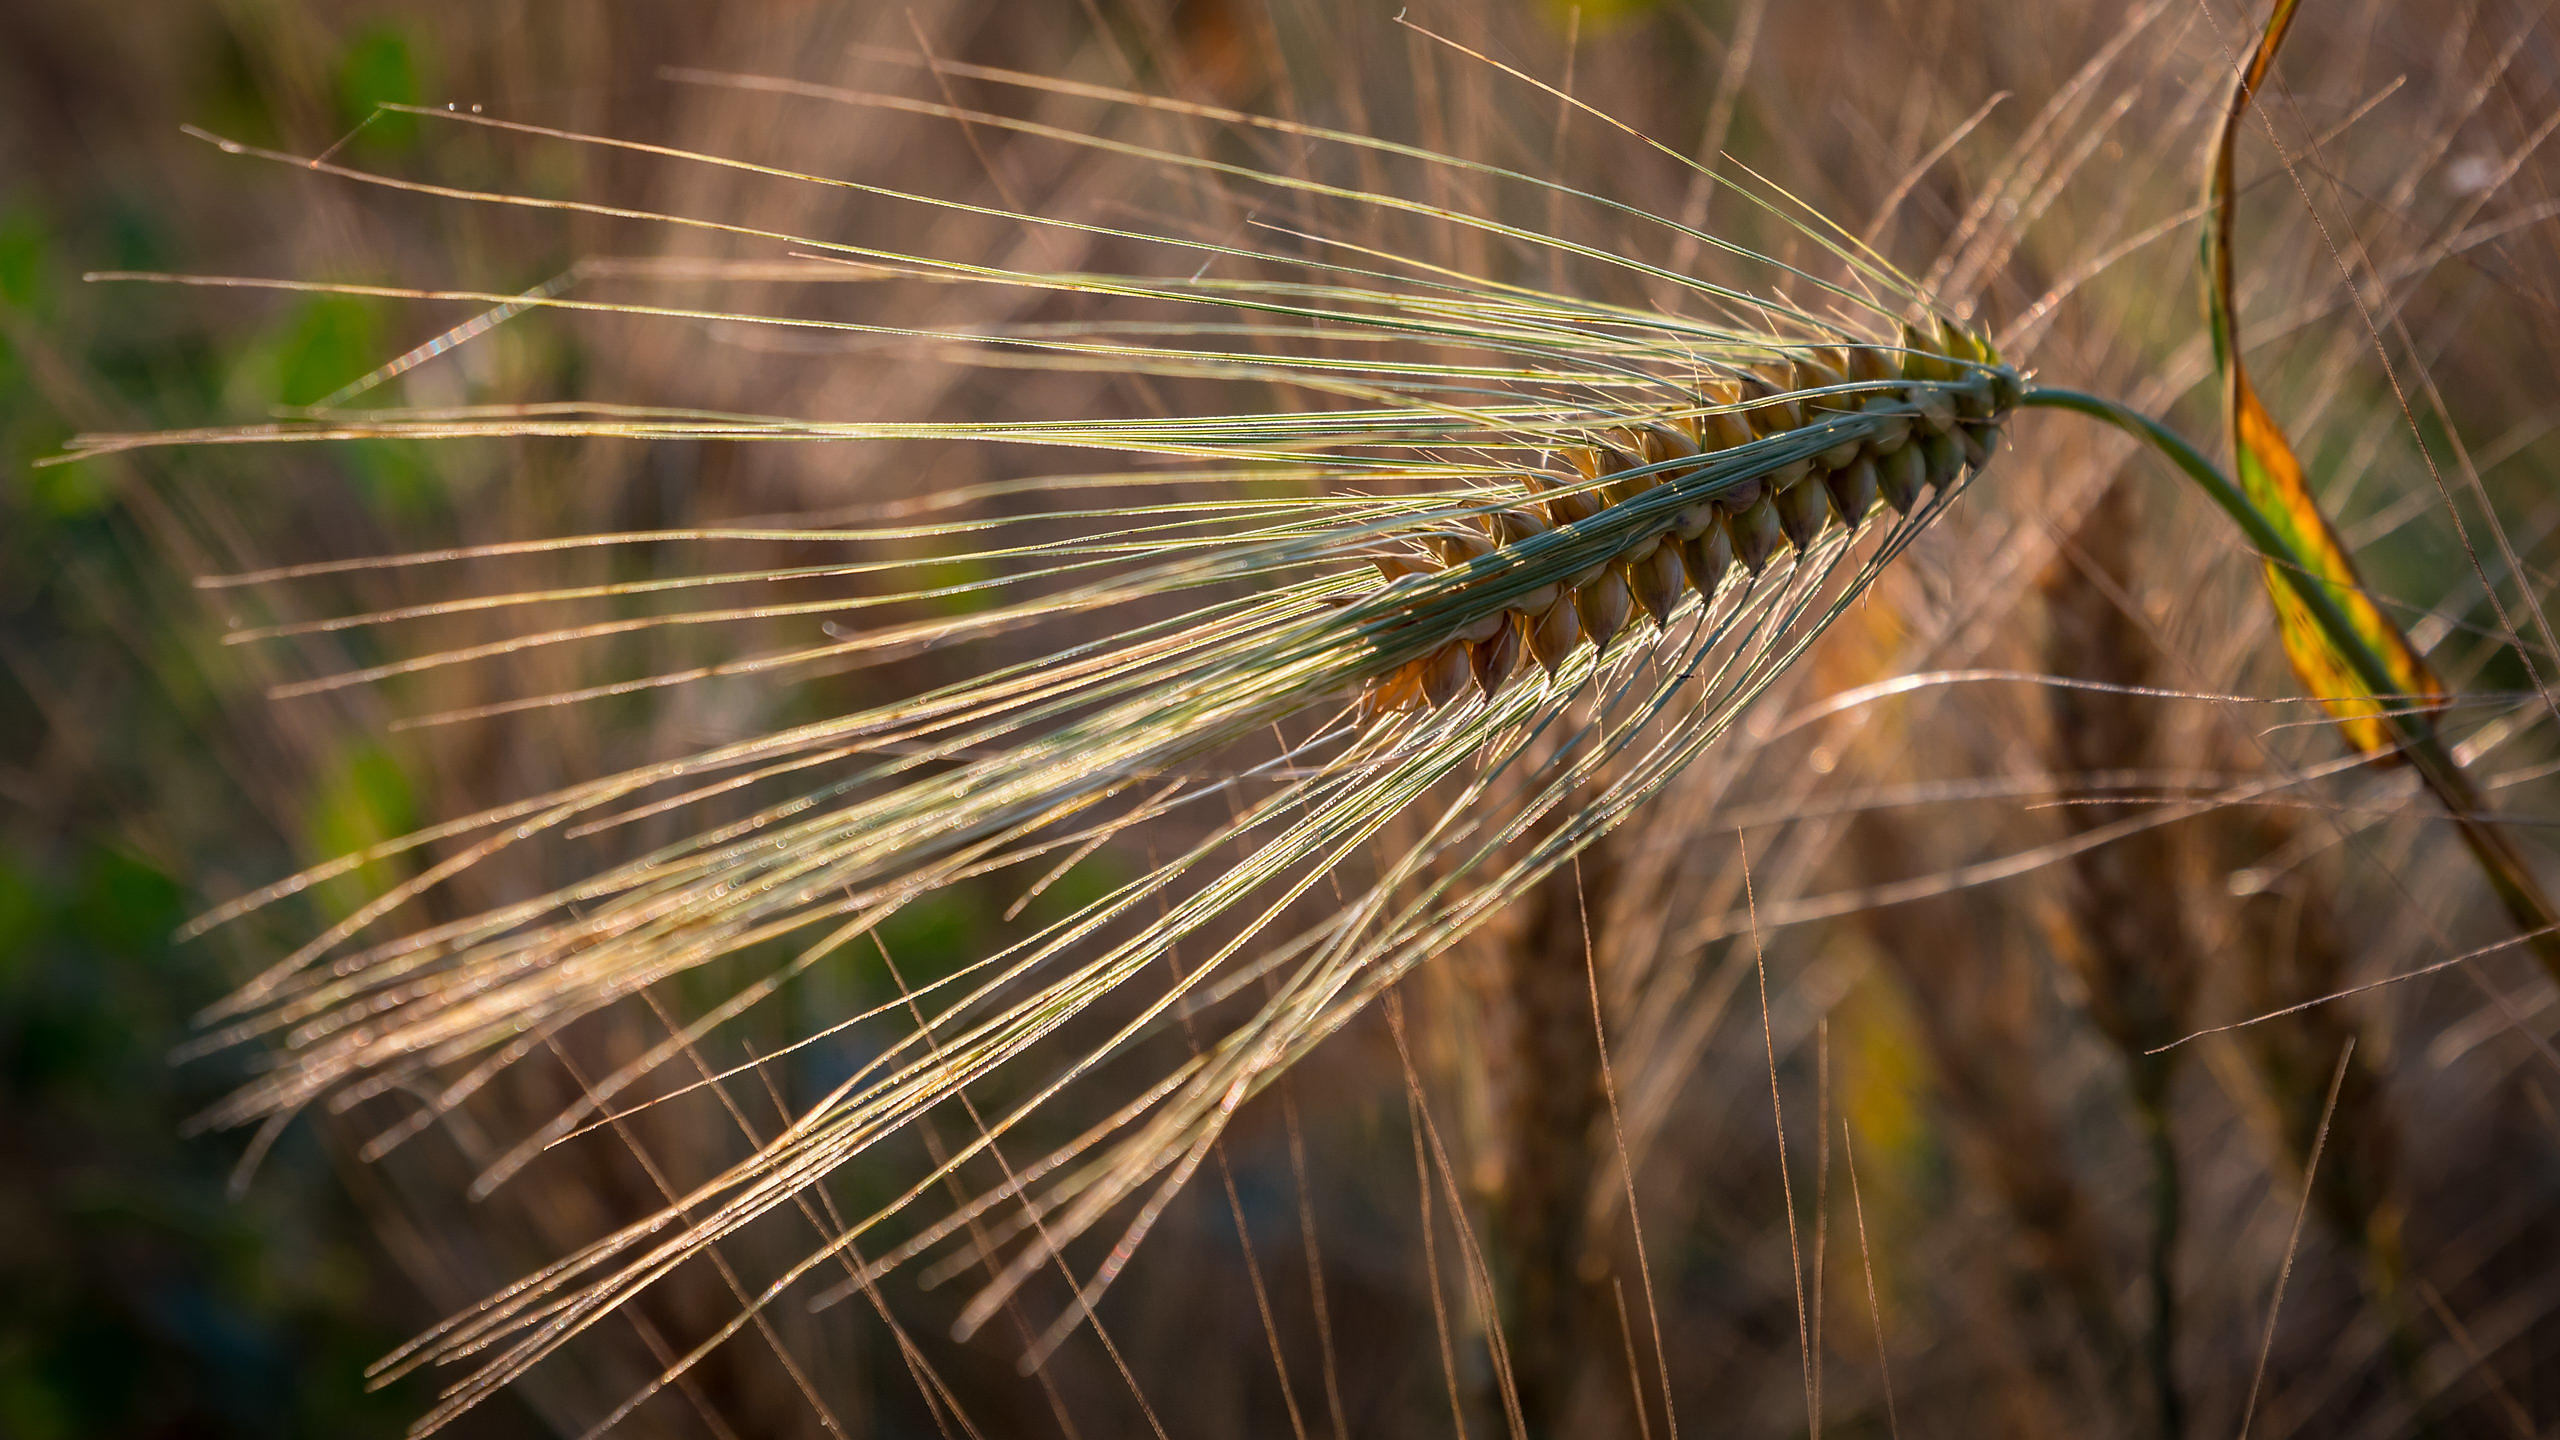 Wheat Close-up in Golden Sunset